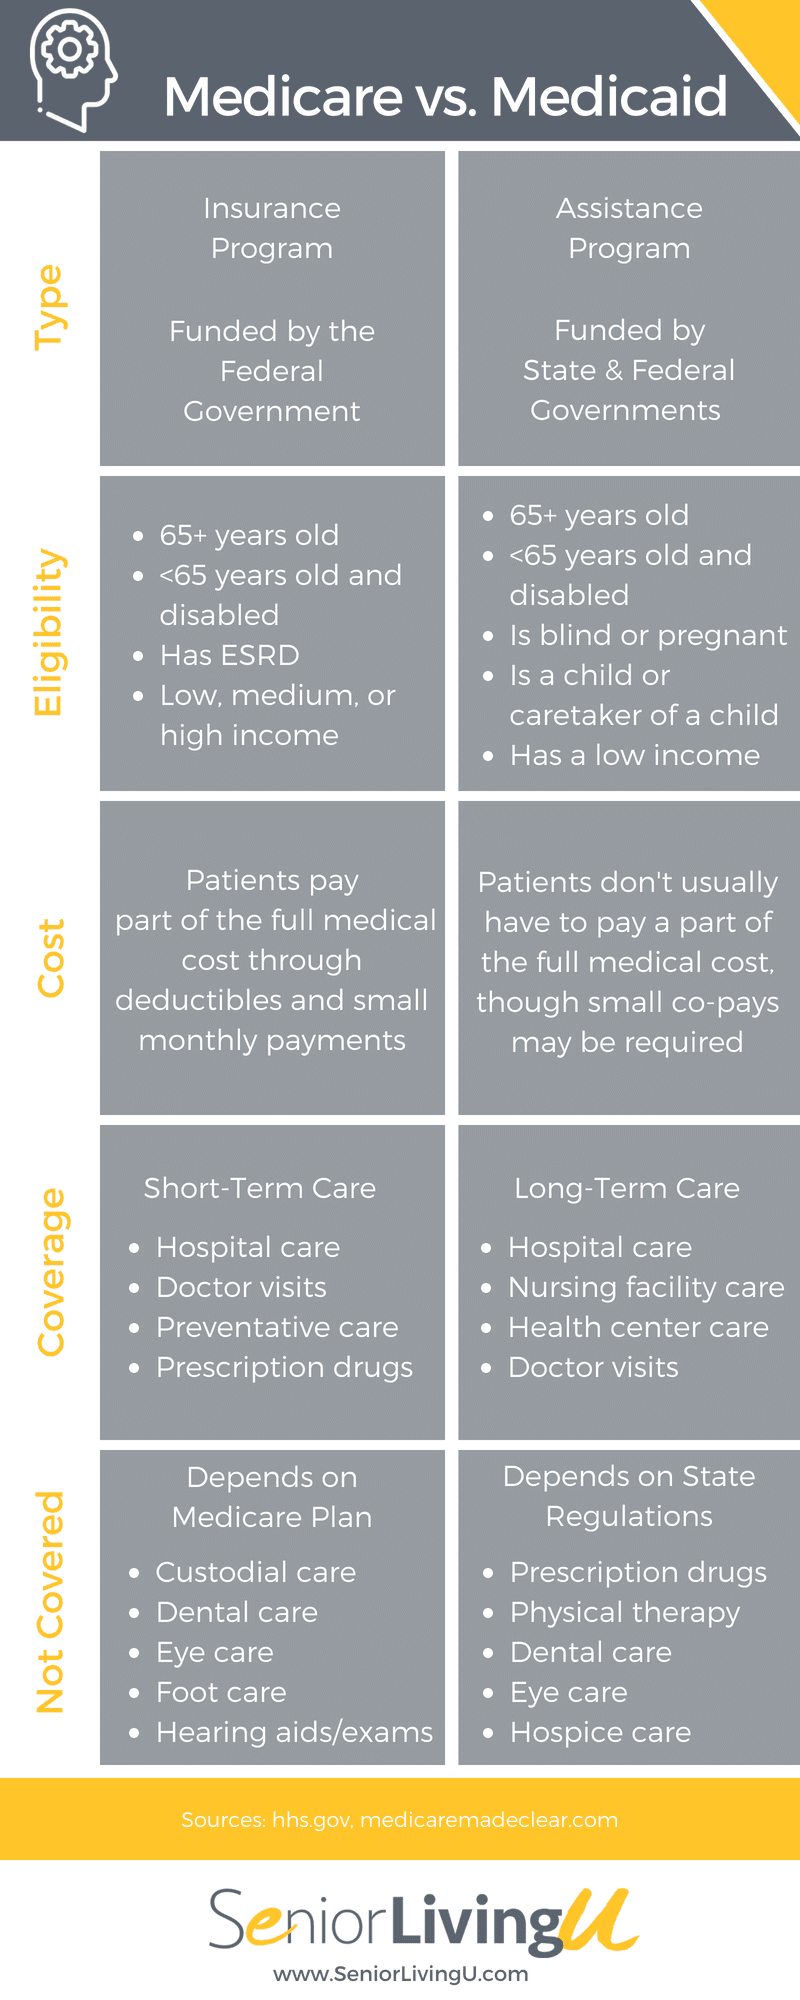 Medicare vs. Medicaid Infographic